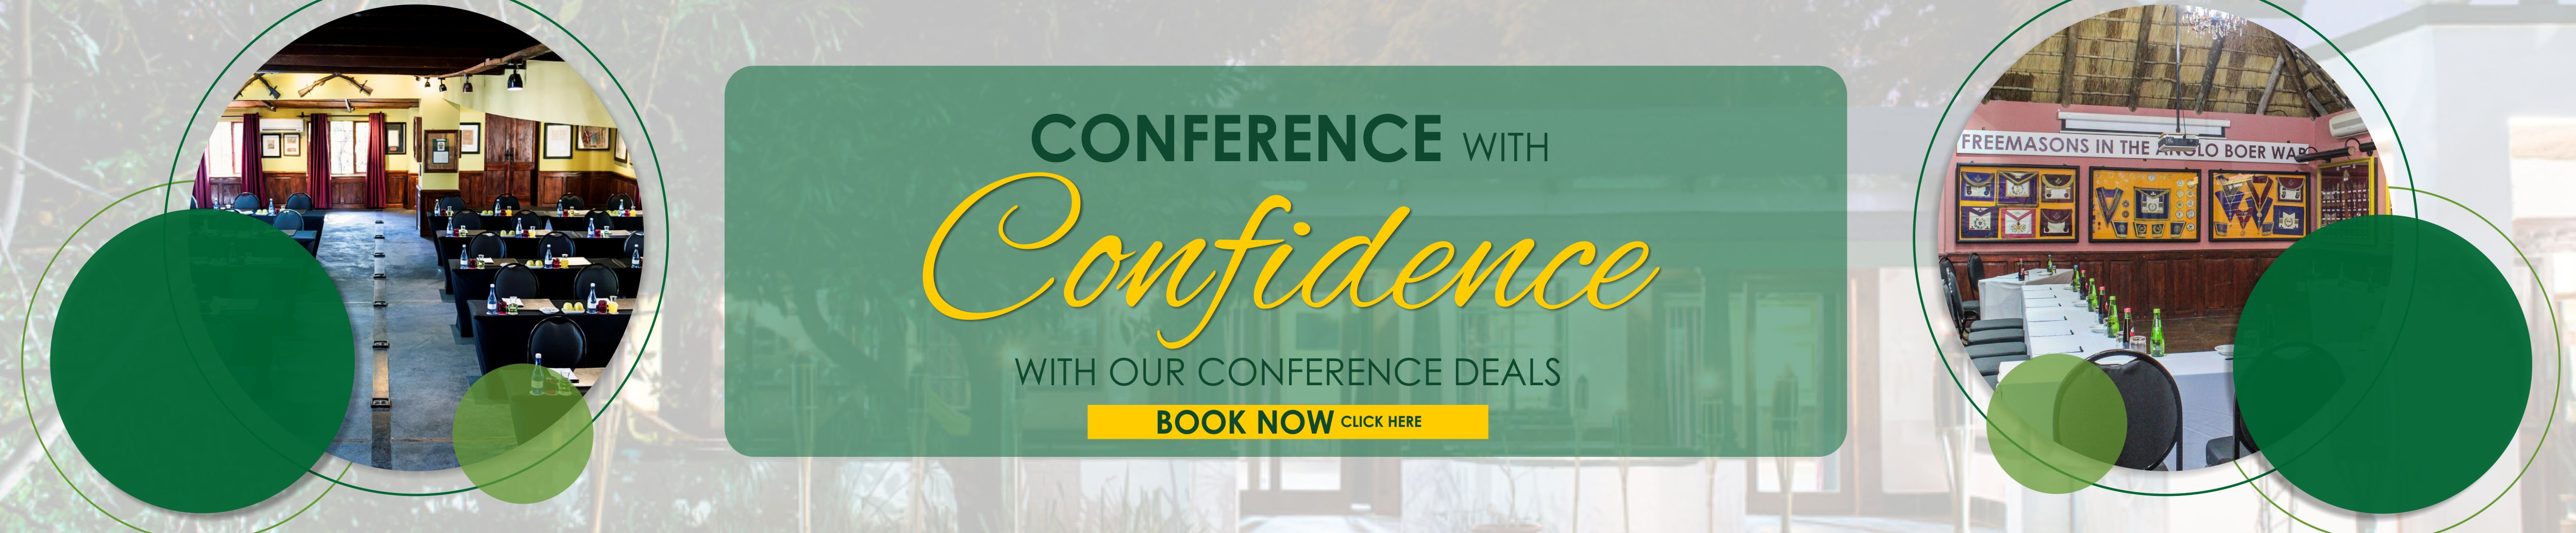 October Conference Deal 2021